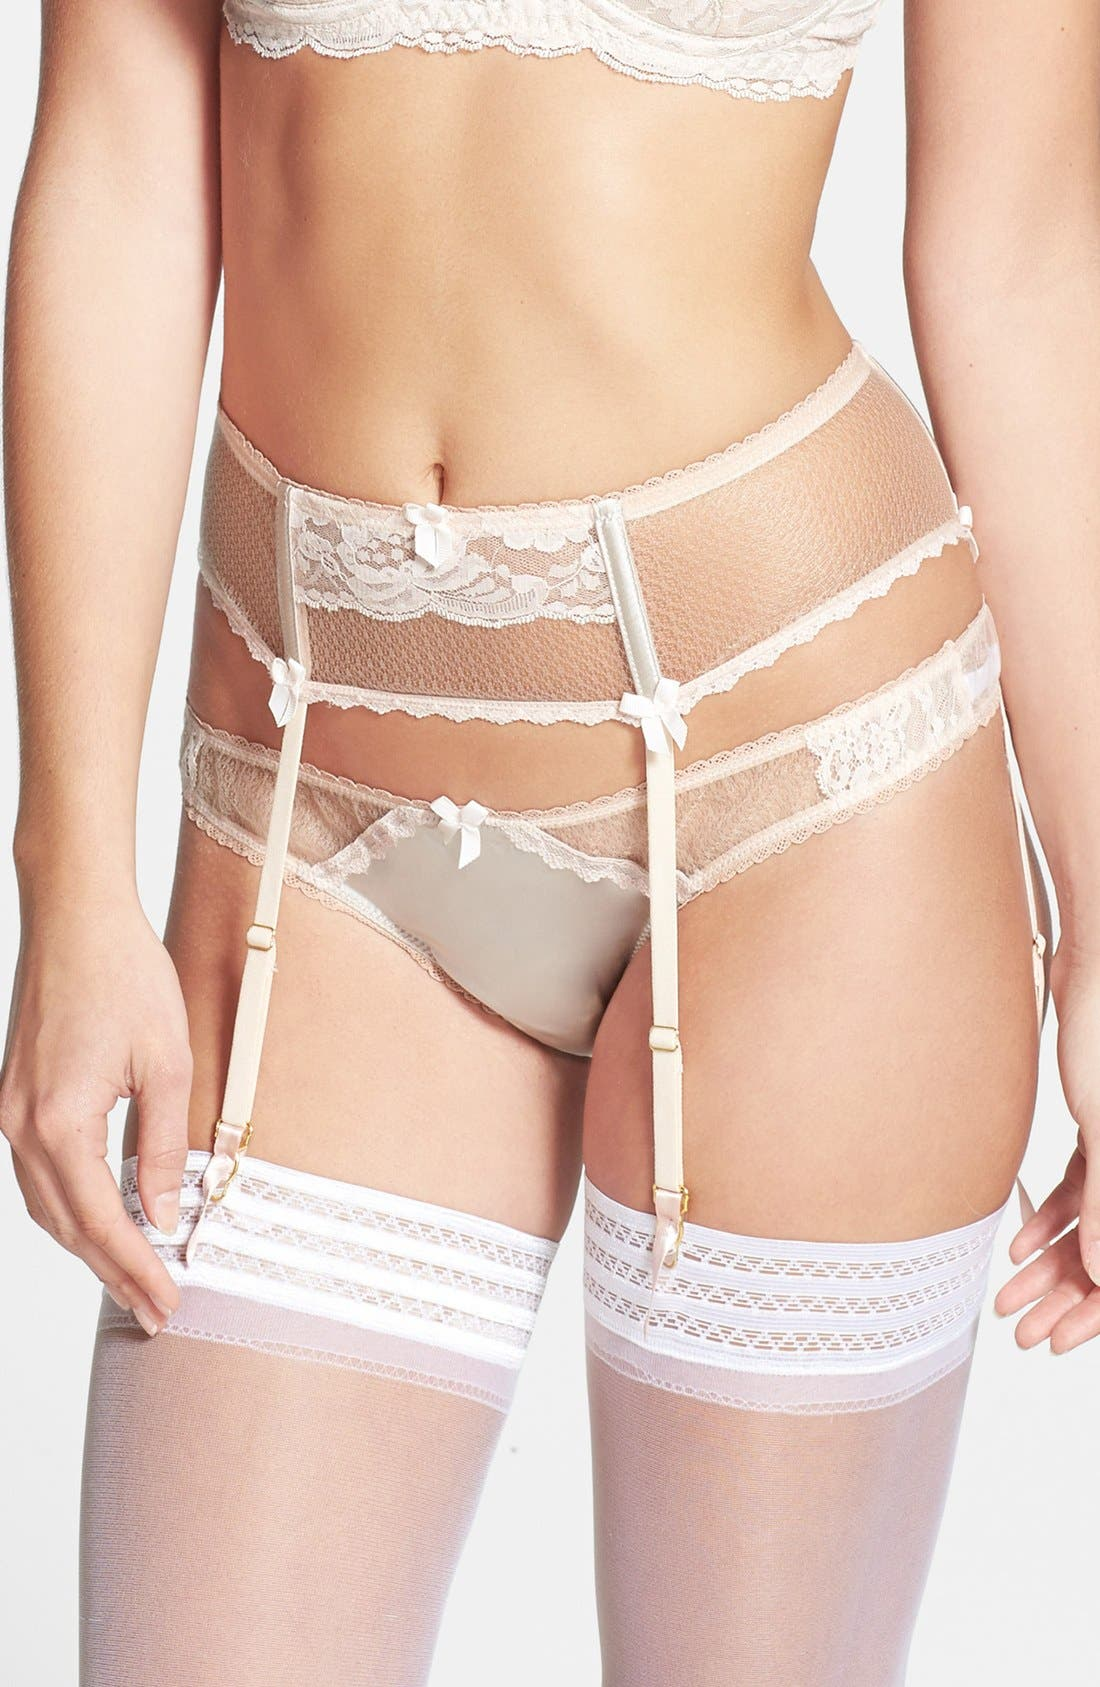 Alternate Image 1 Selected - Mimi Holliday 'Sticky Toffee Pudding' Garter Belt